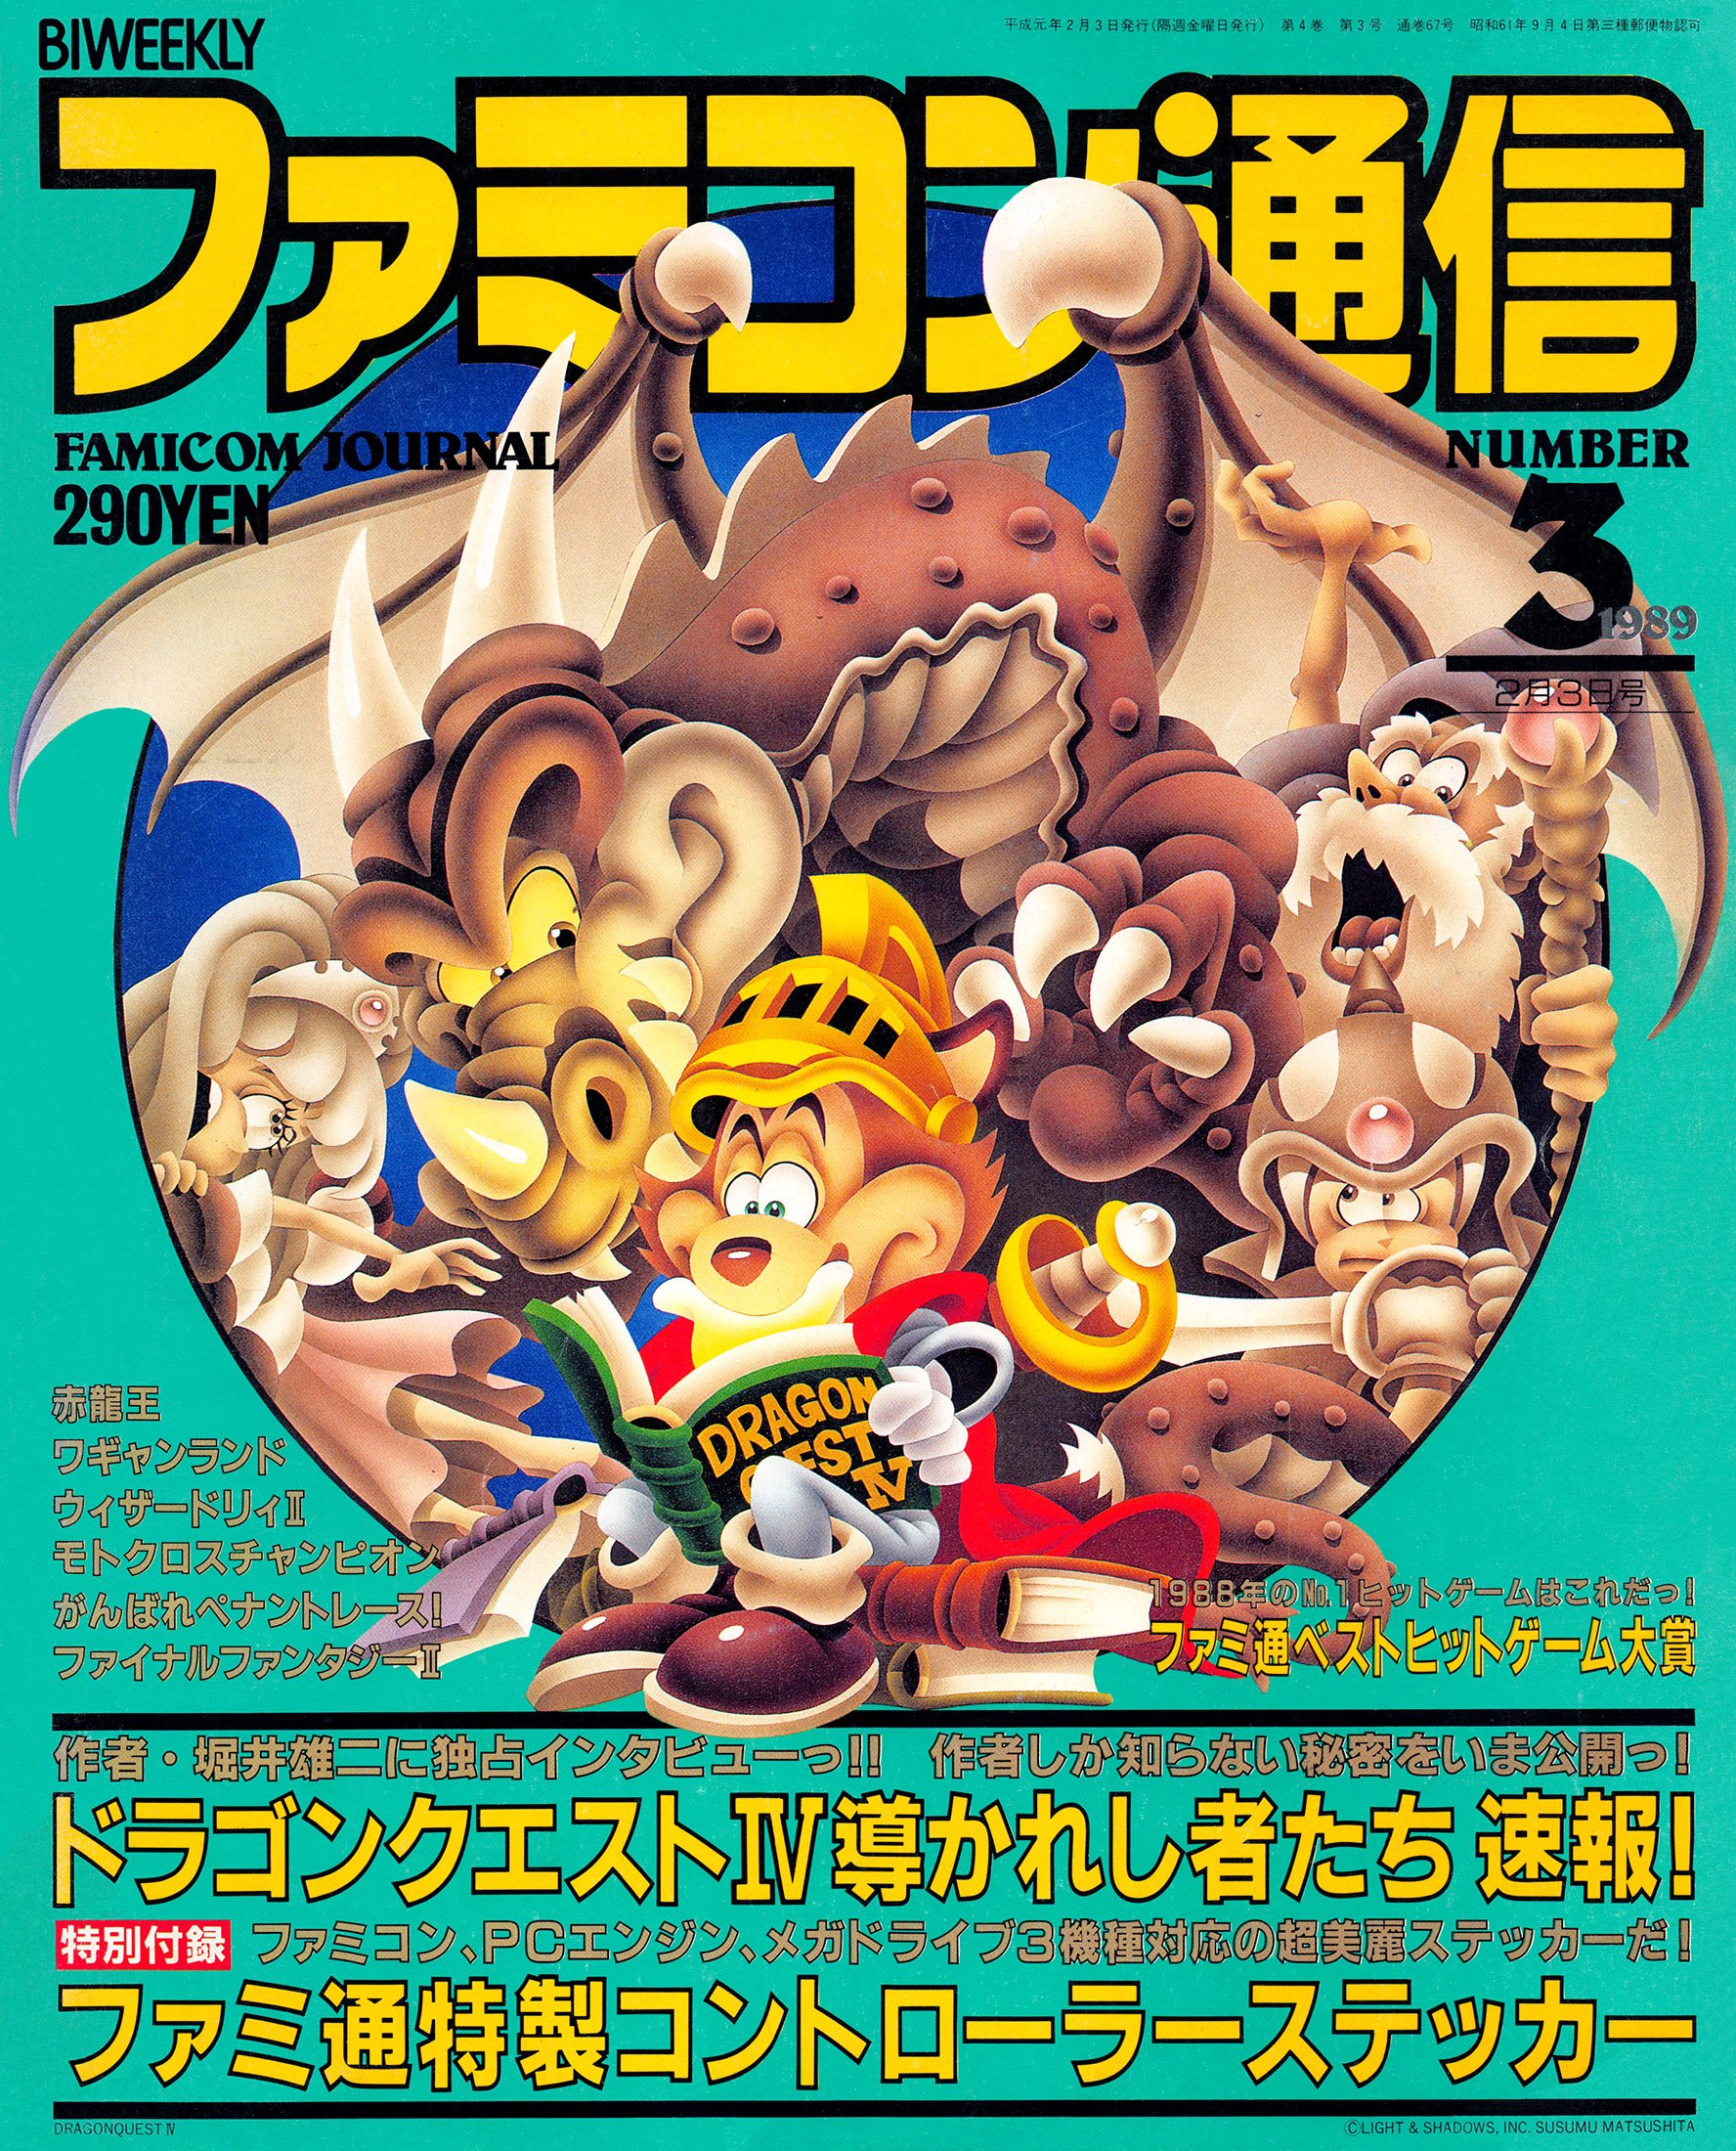 New Release - Famitsu Issue 0067 (February 3, 1989)